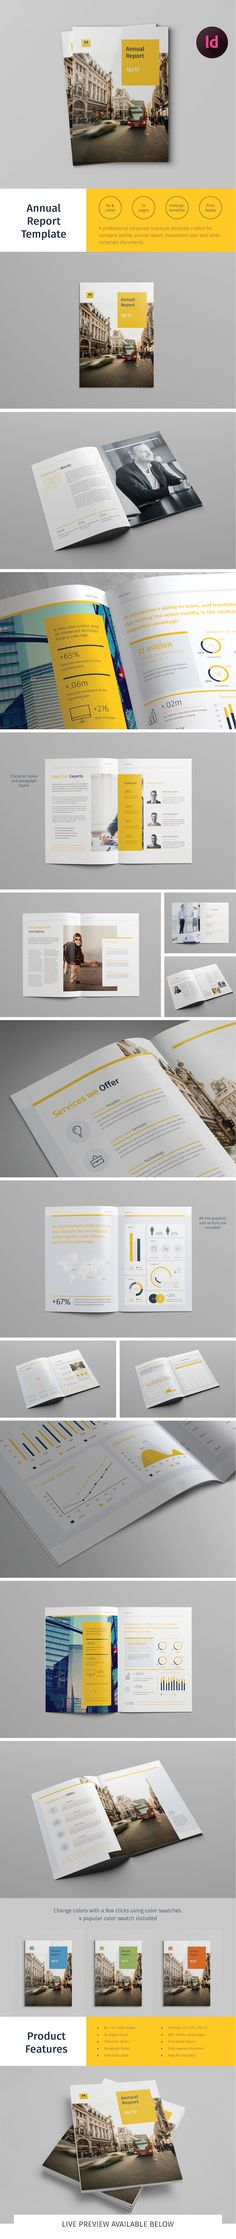 Annual Report Annual reports, Template and Brochures - business annual report template